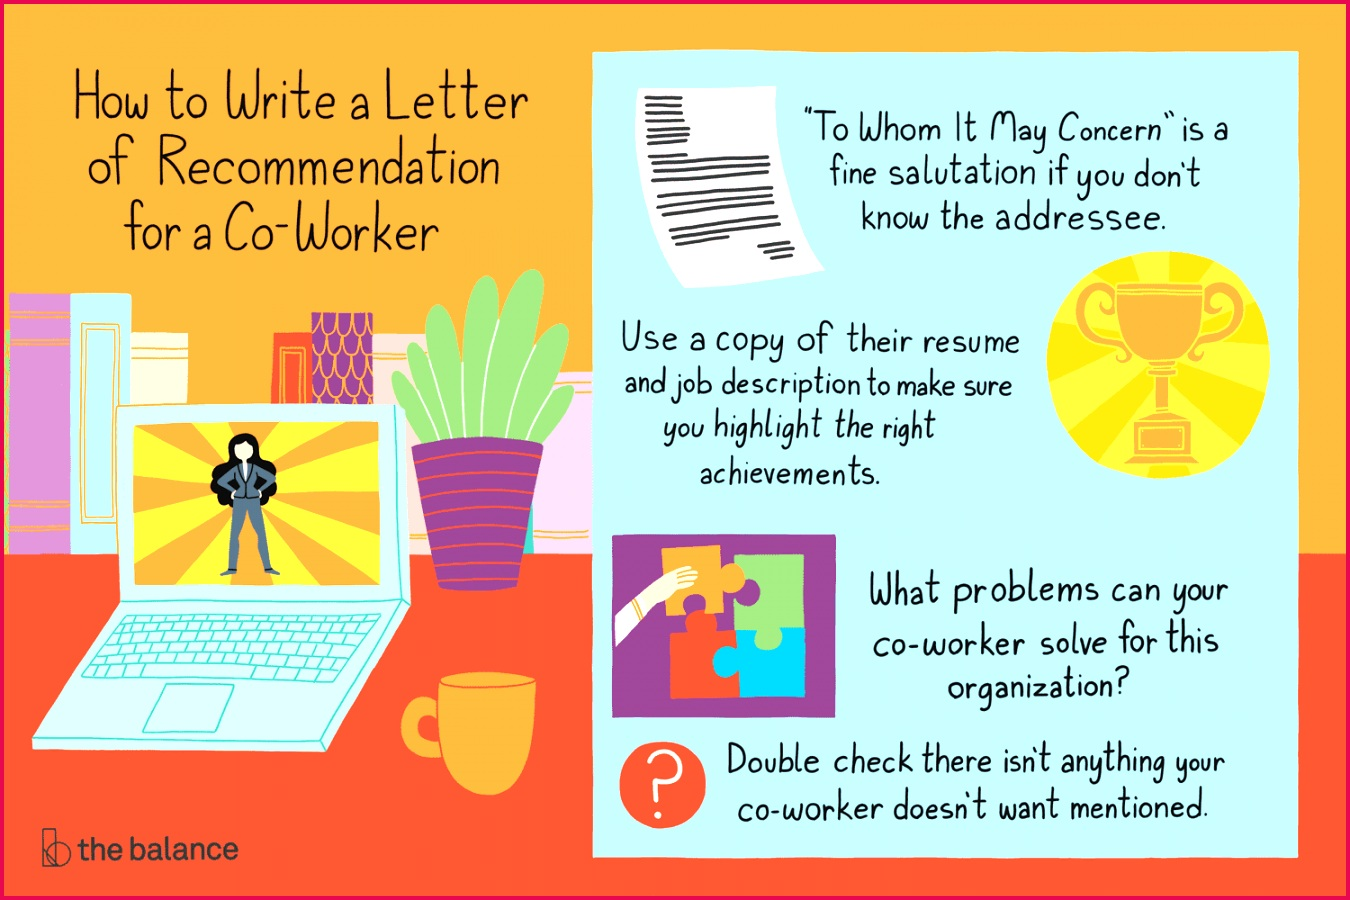 how to write a letter of re mendation for a co worker v1 5bc4bdbbc9e77c ff2f7